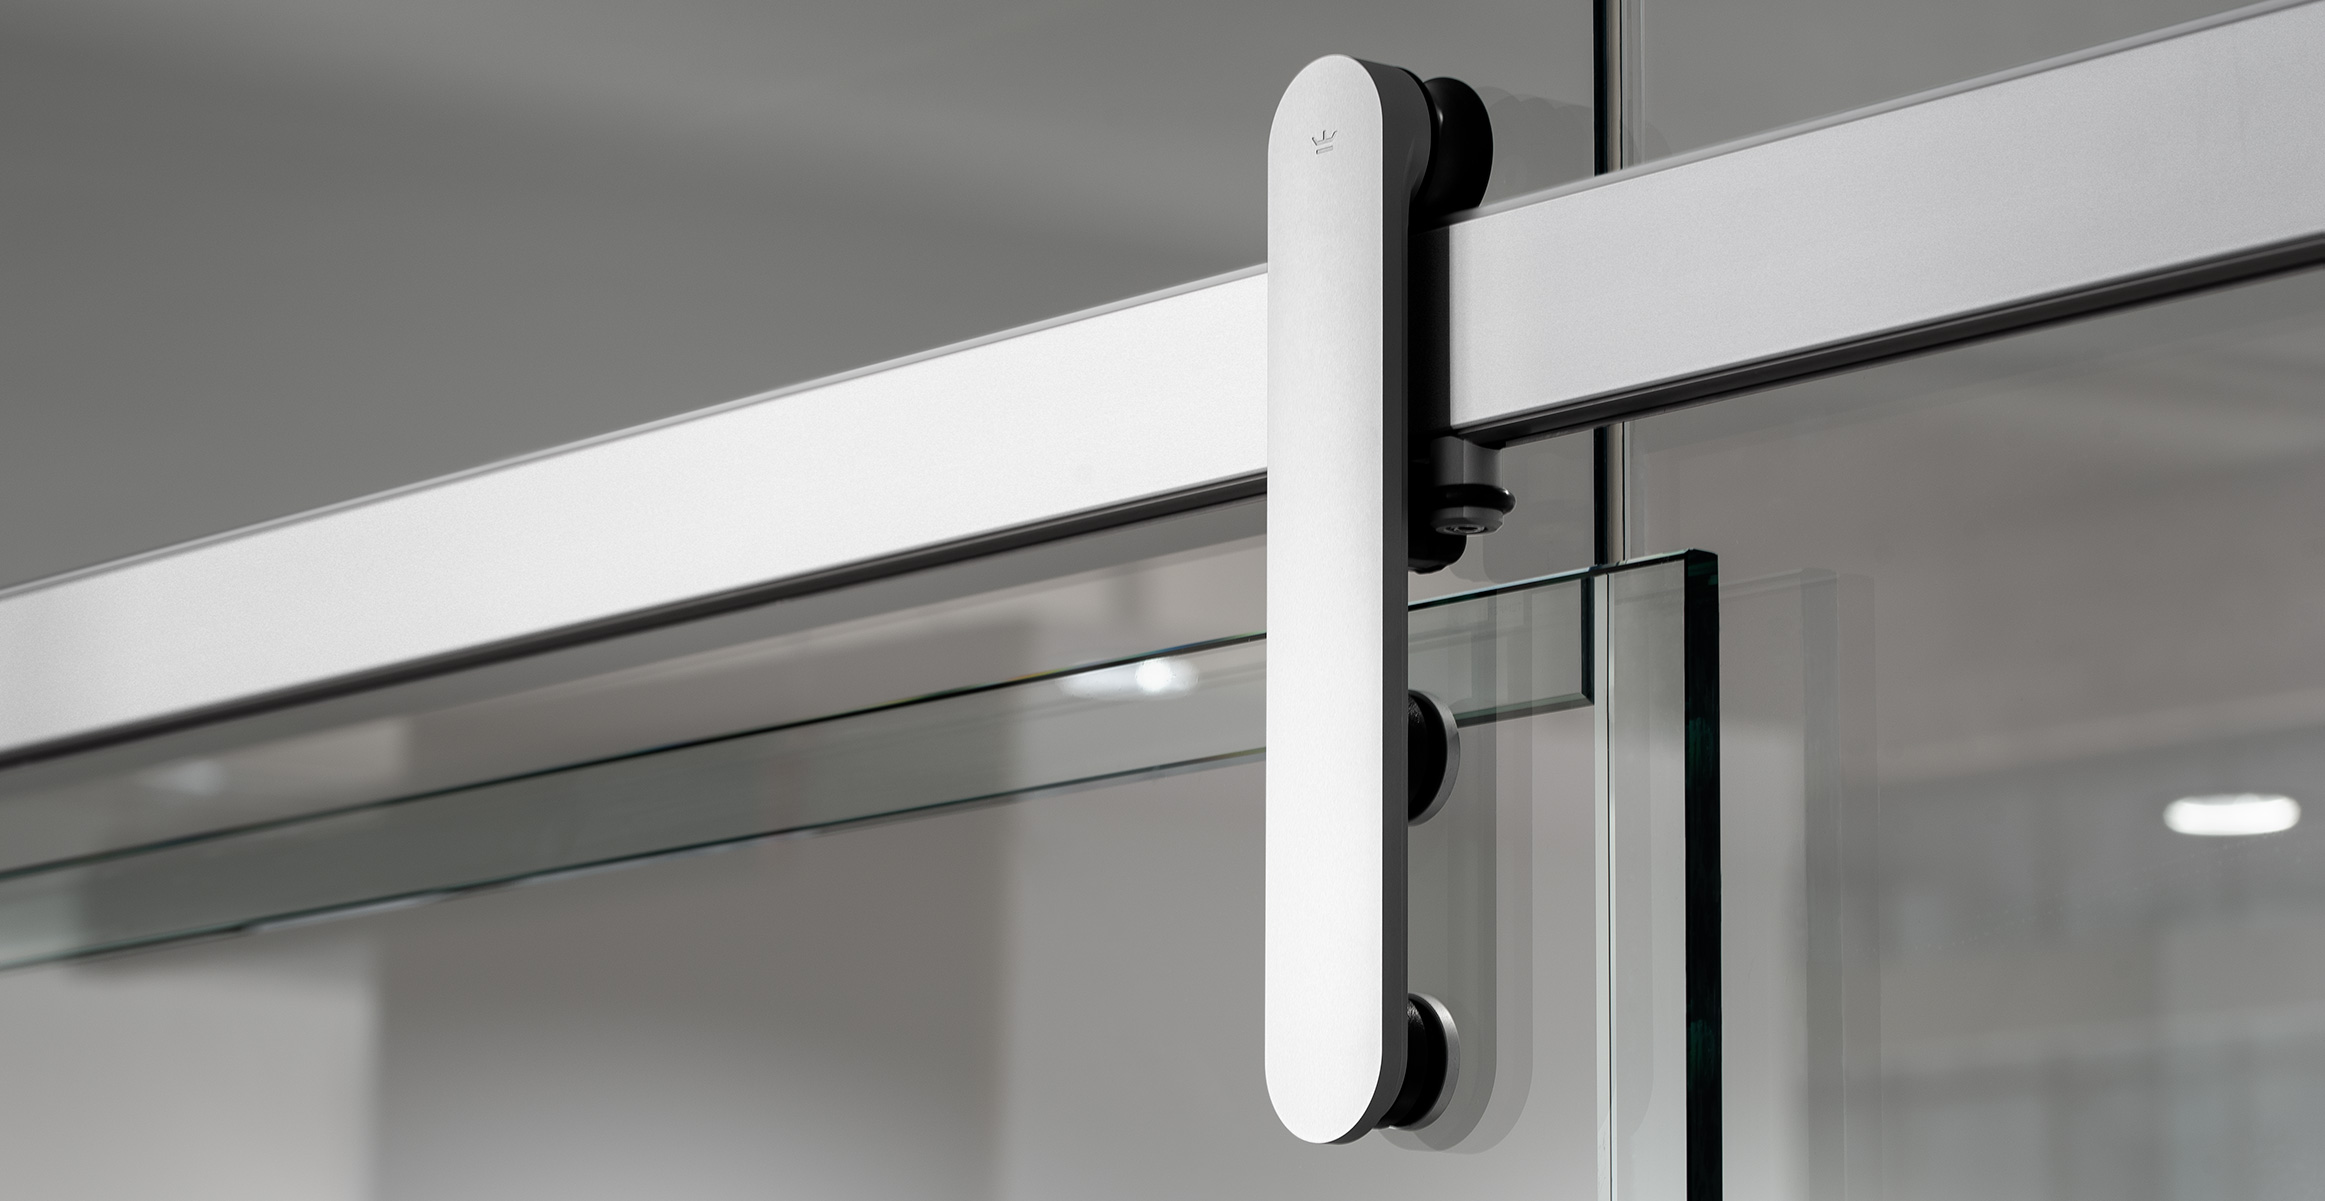 Loki sliding door hardware installed on glass office wall